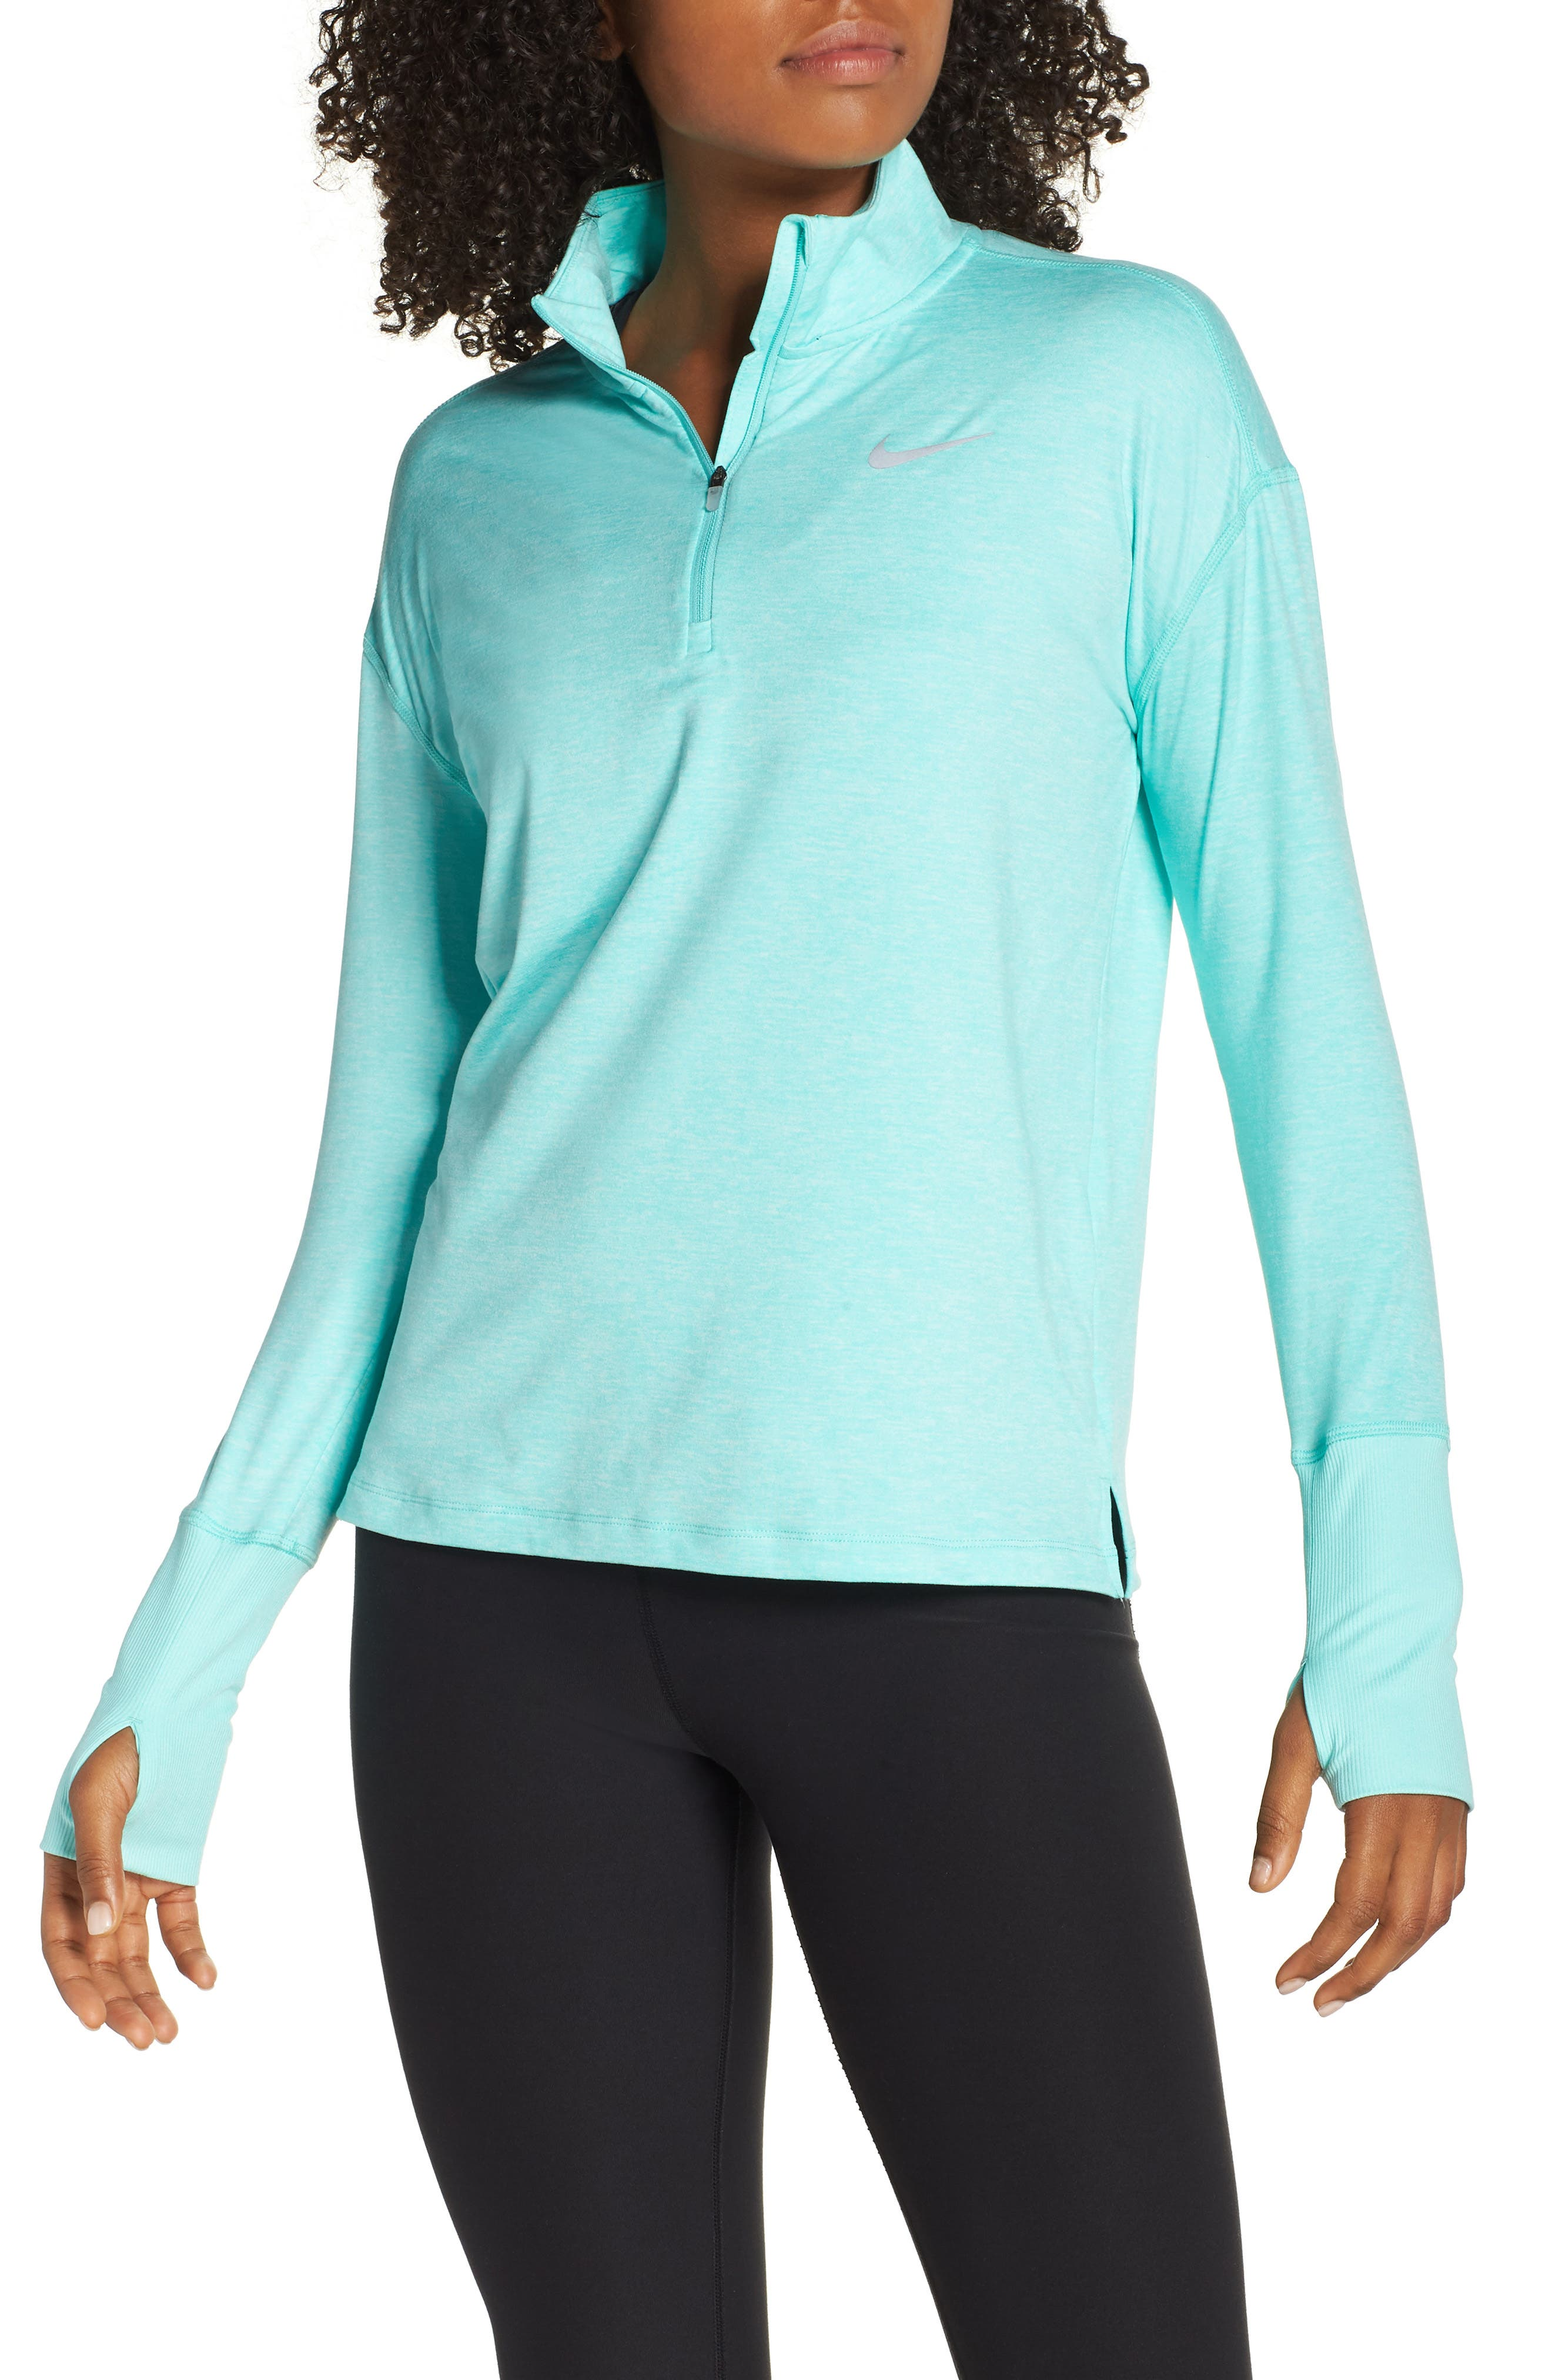 Element Long-Sleeve Running Top,                             Main thumbnail 1, color,                             TROPICAL TWIST/ TEAL TINT